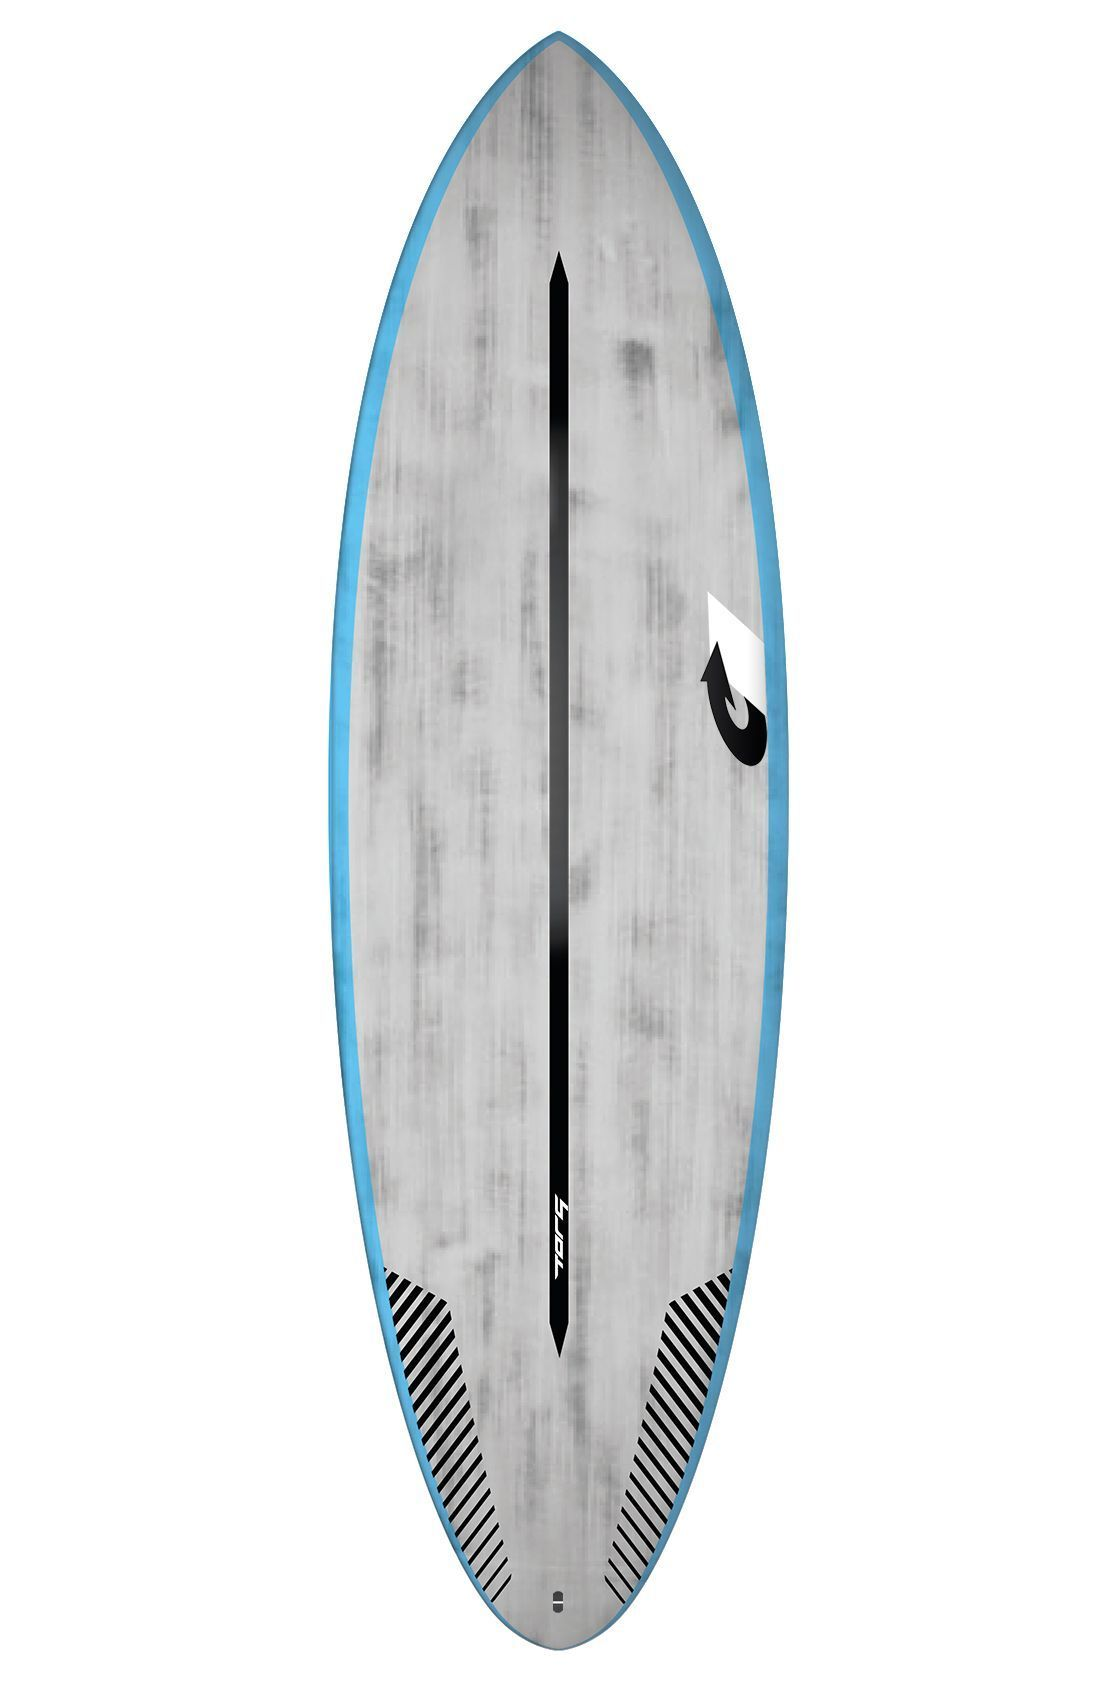 Prancha Surf Torq 6'0 MULTIPLIER BLUE RAILS + BRUSHED GRAY Round Tail - Color Futures Multisystem 6ft0